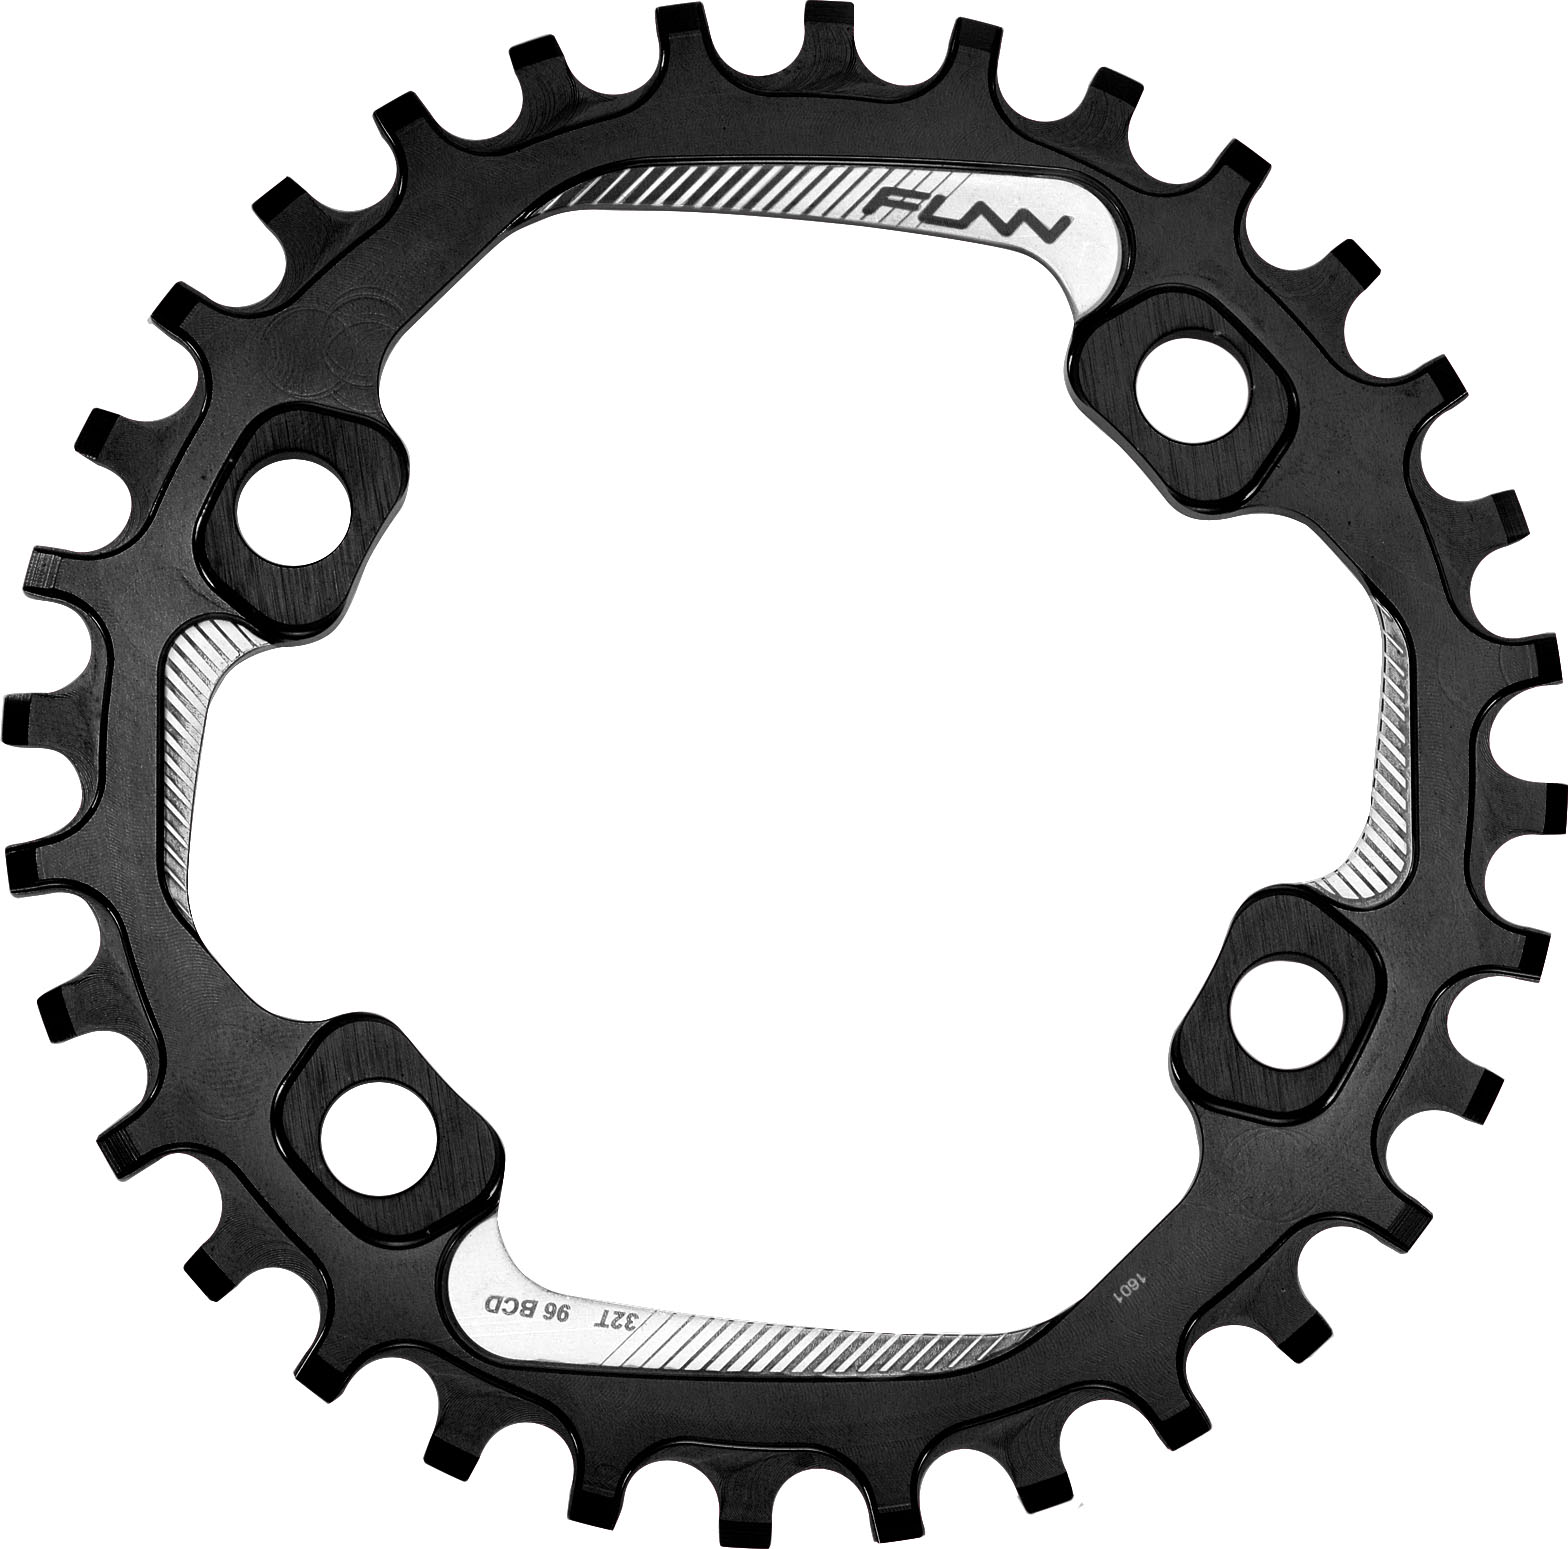 Funn Solo 96 Narrow Wide Chainring | chainrings_component